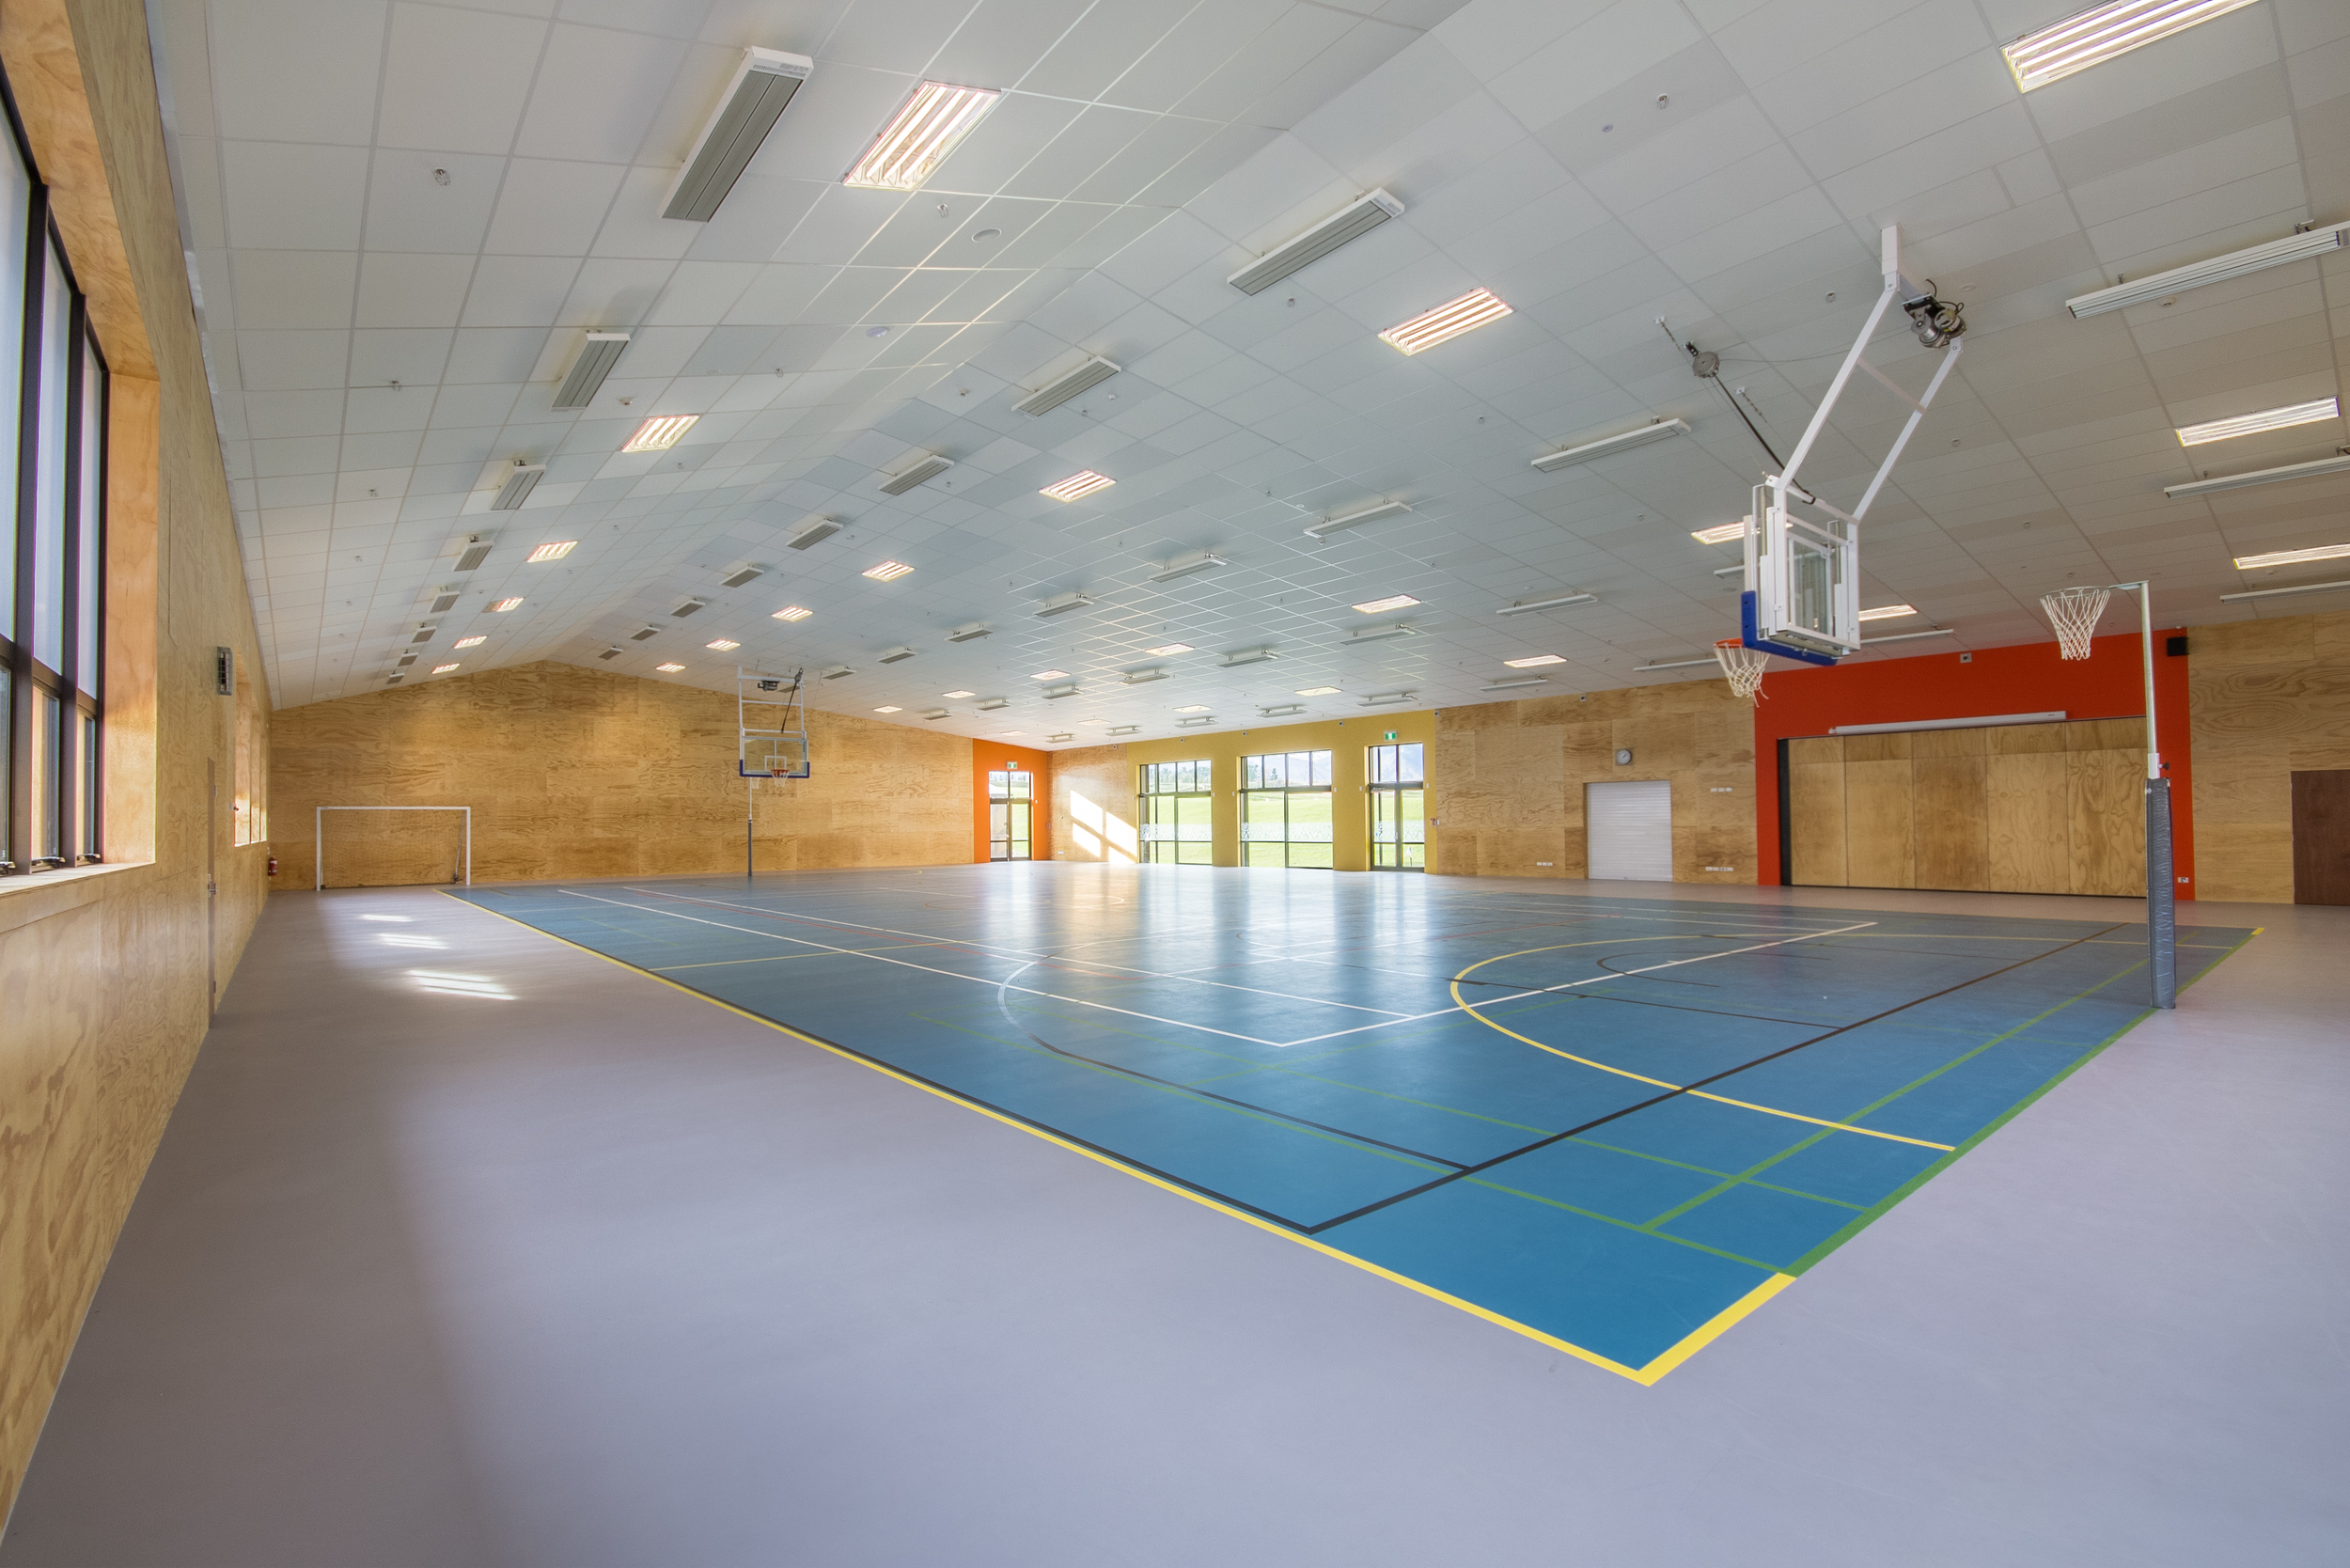 Shotover School Hall Interiors-5.jpg